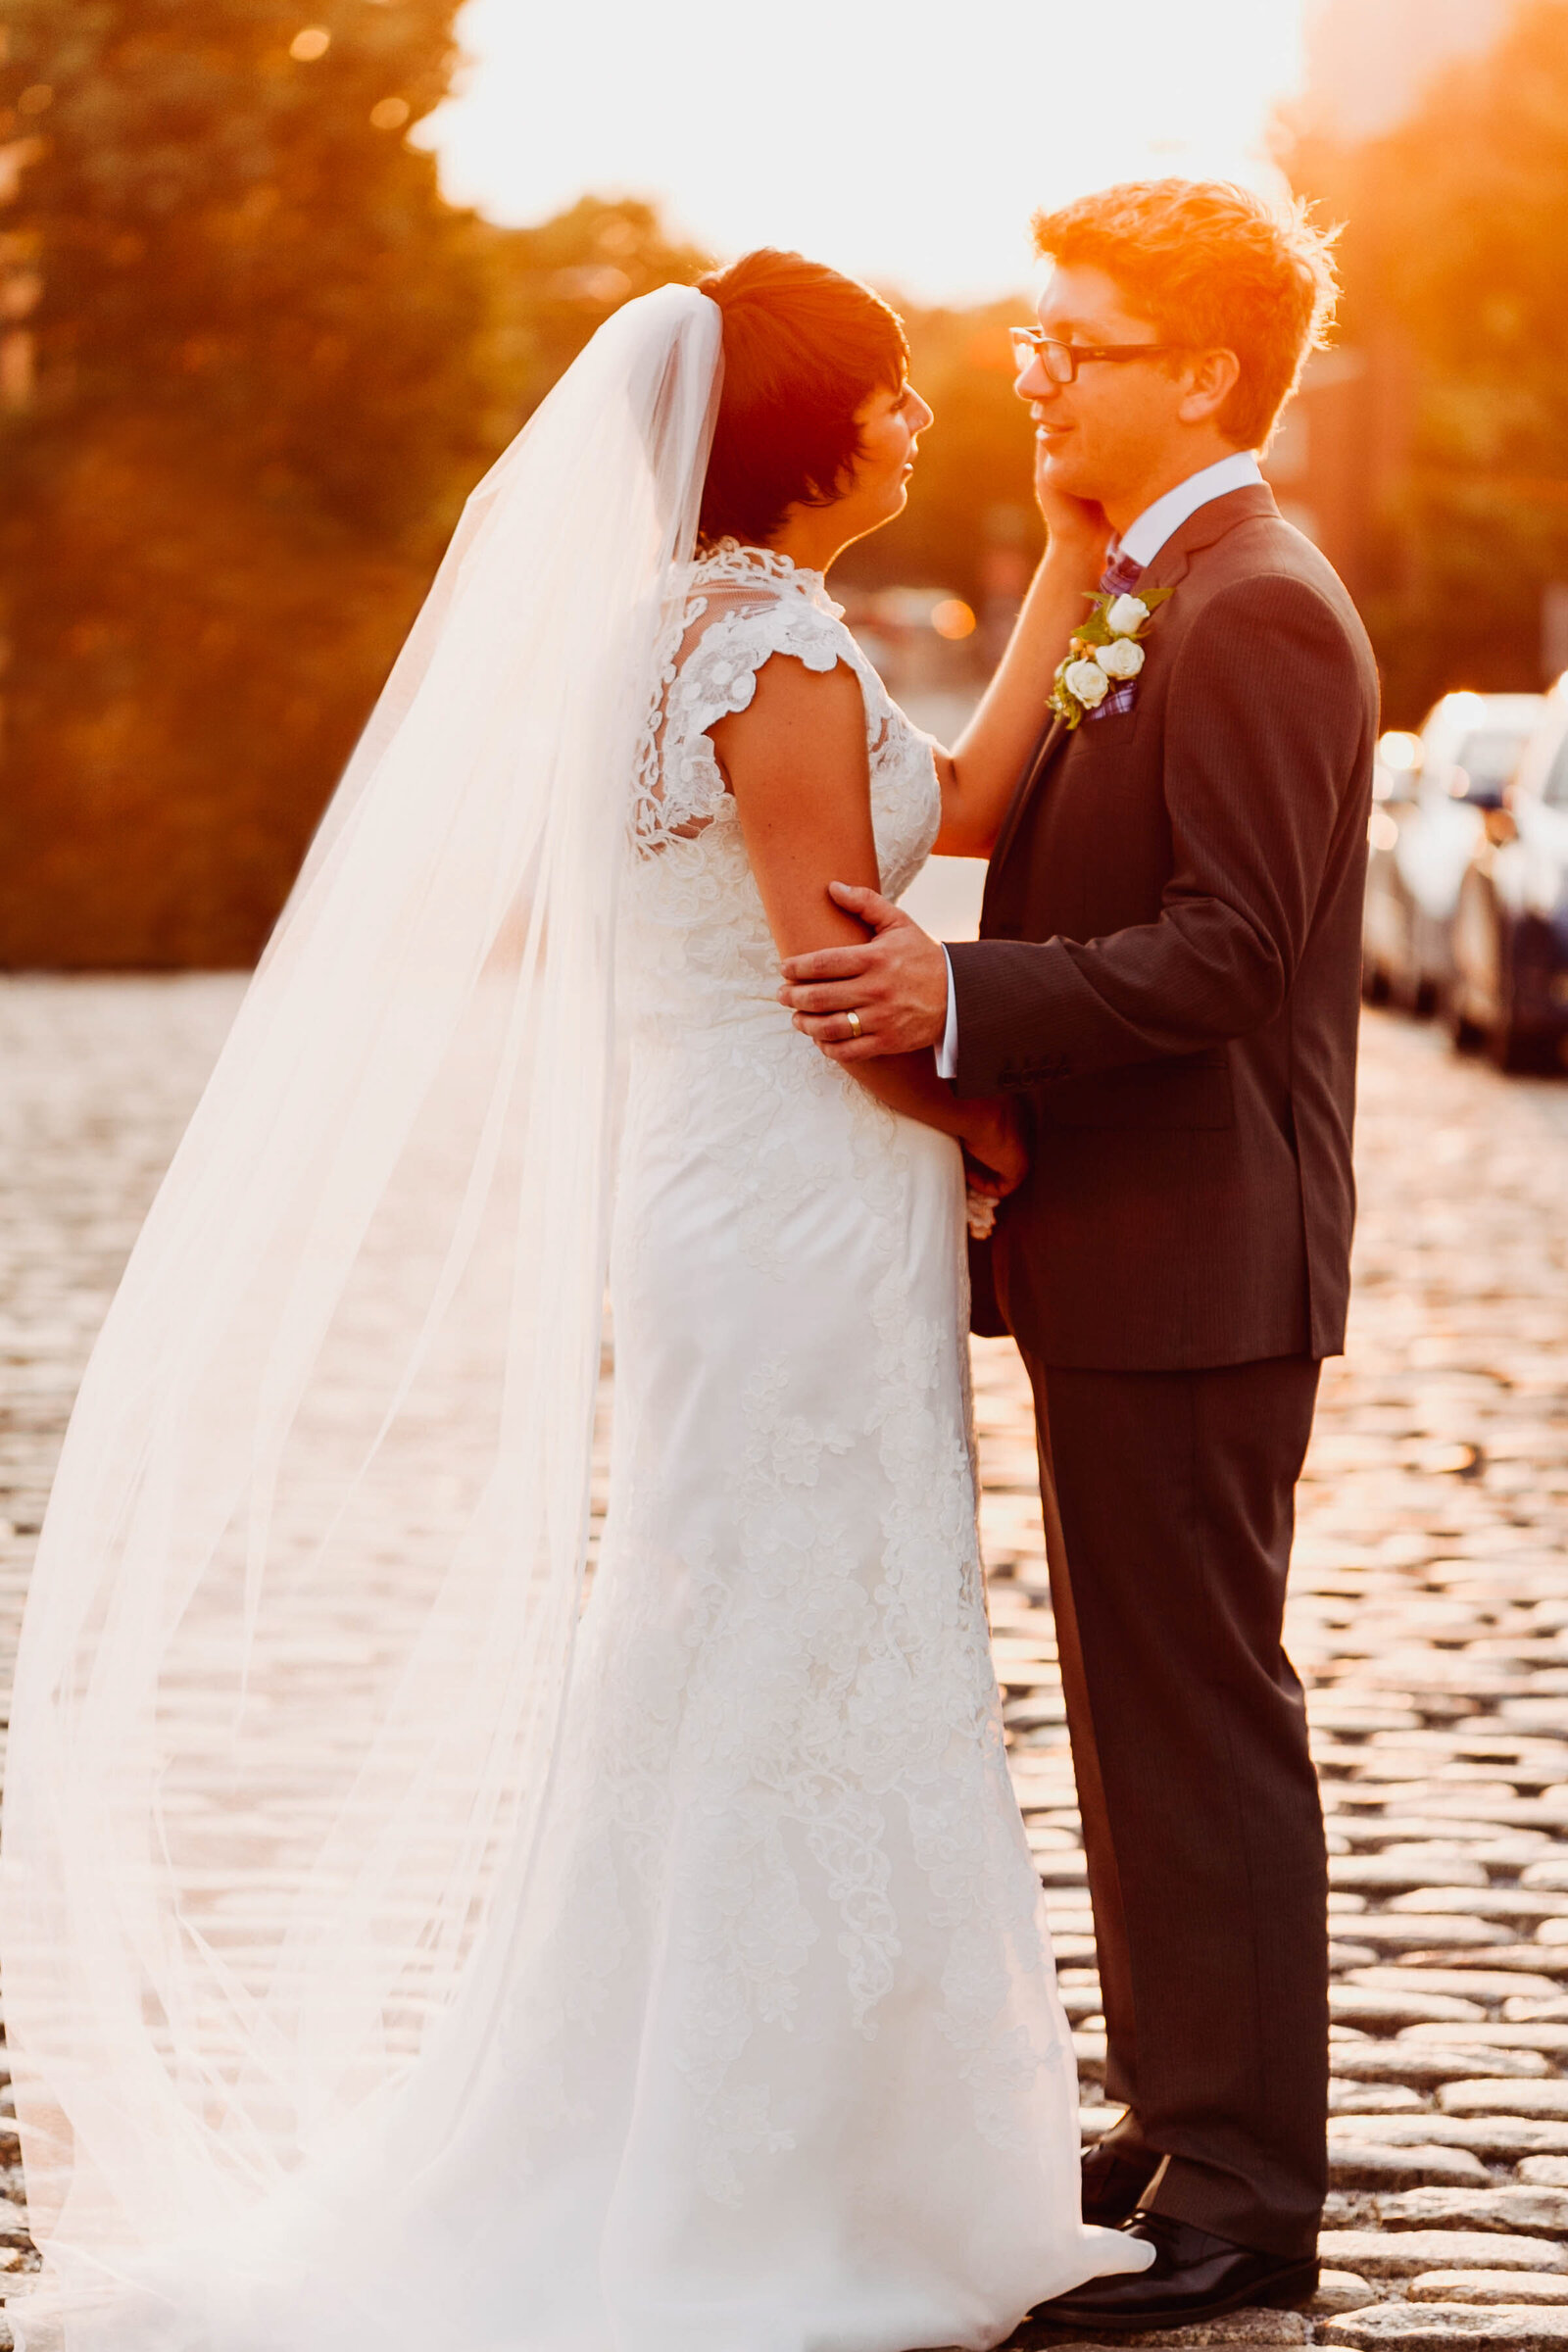 bride and groom at sunset in cobblestone street